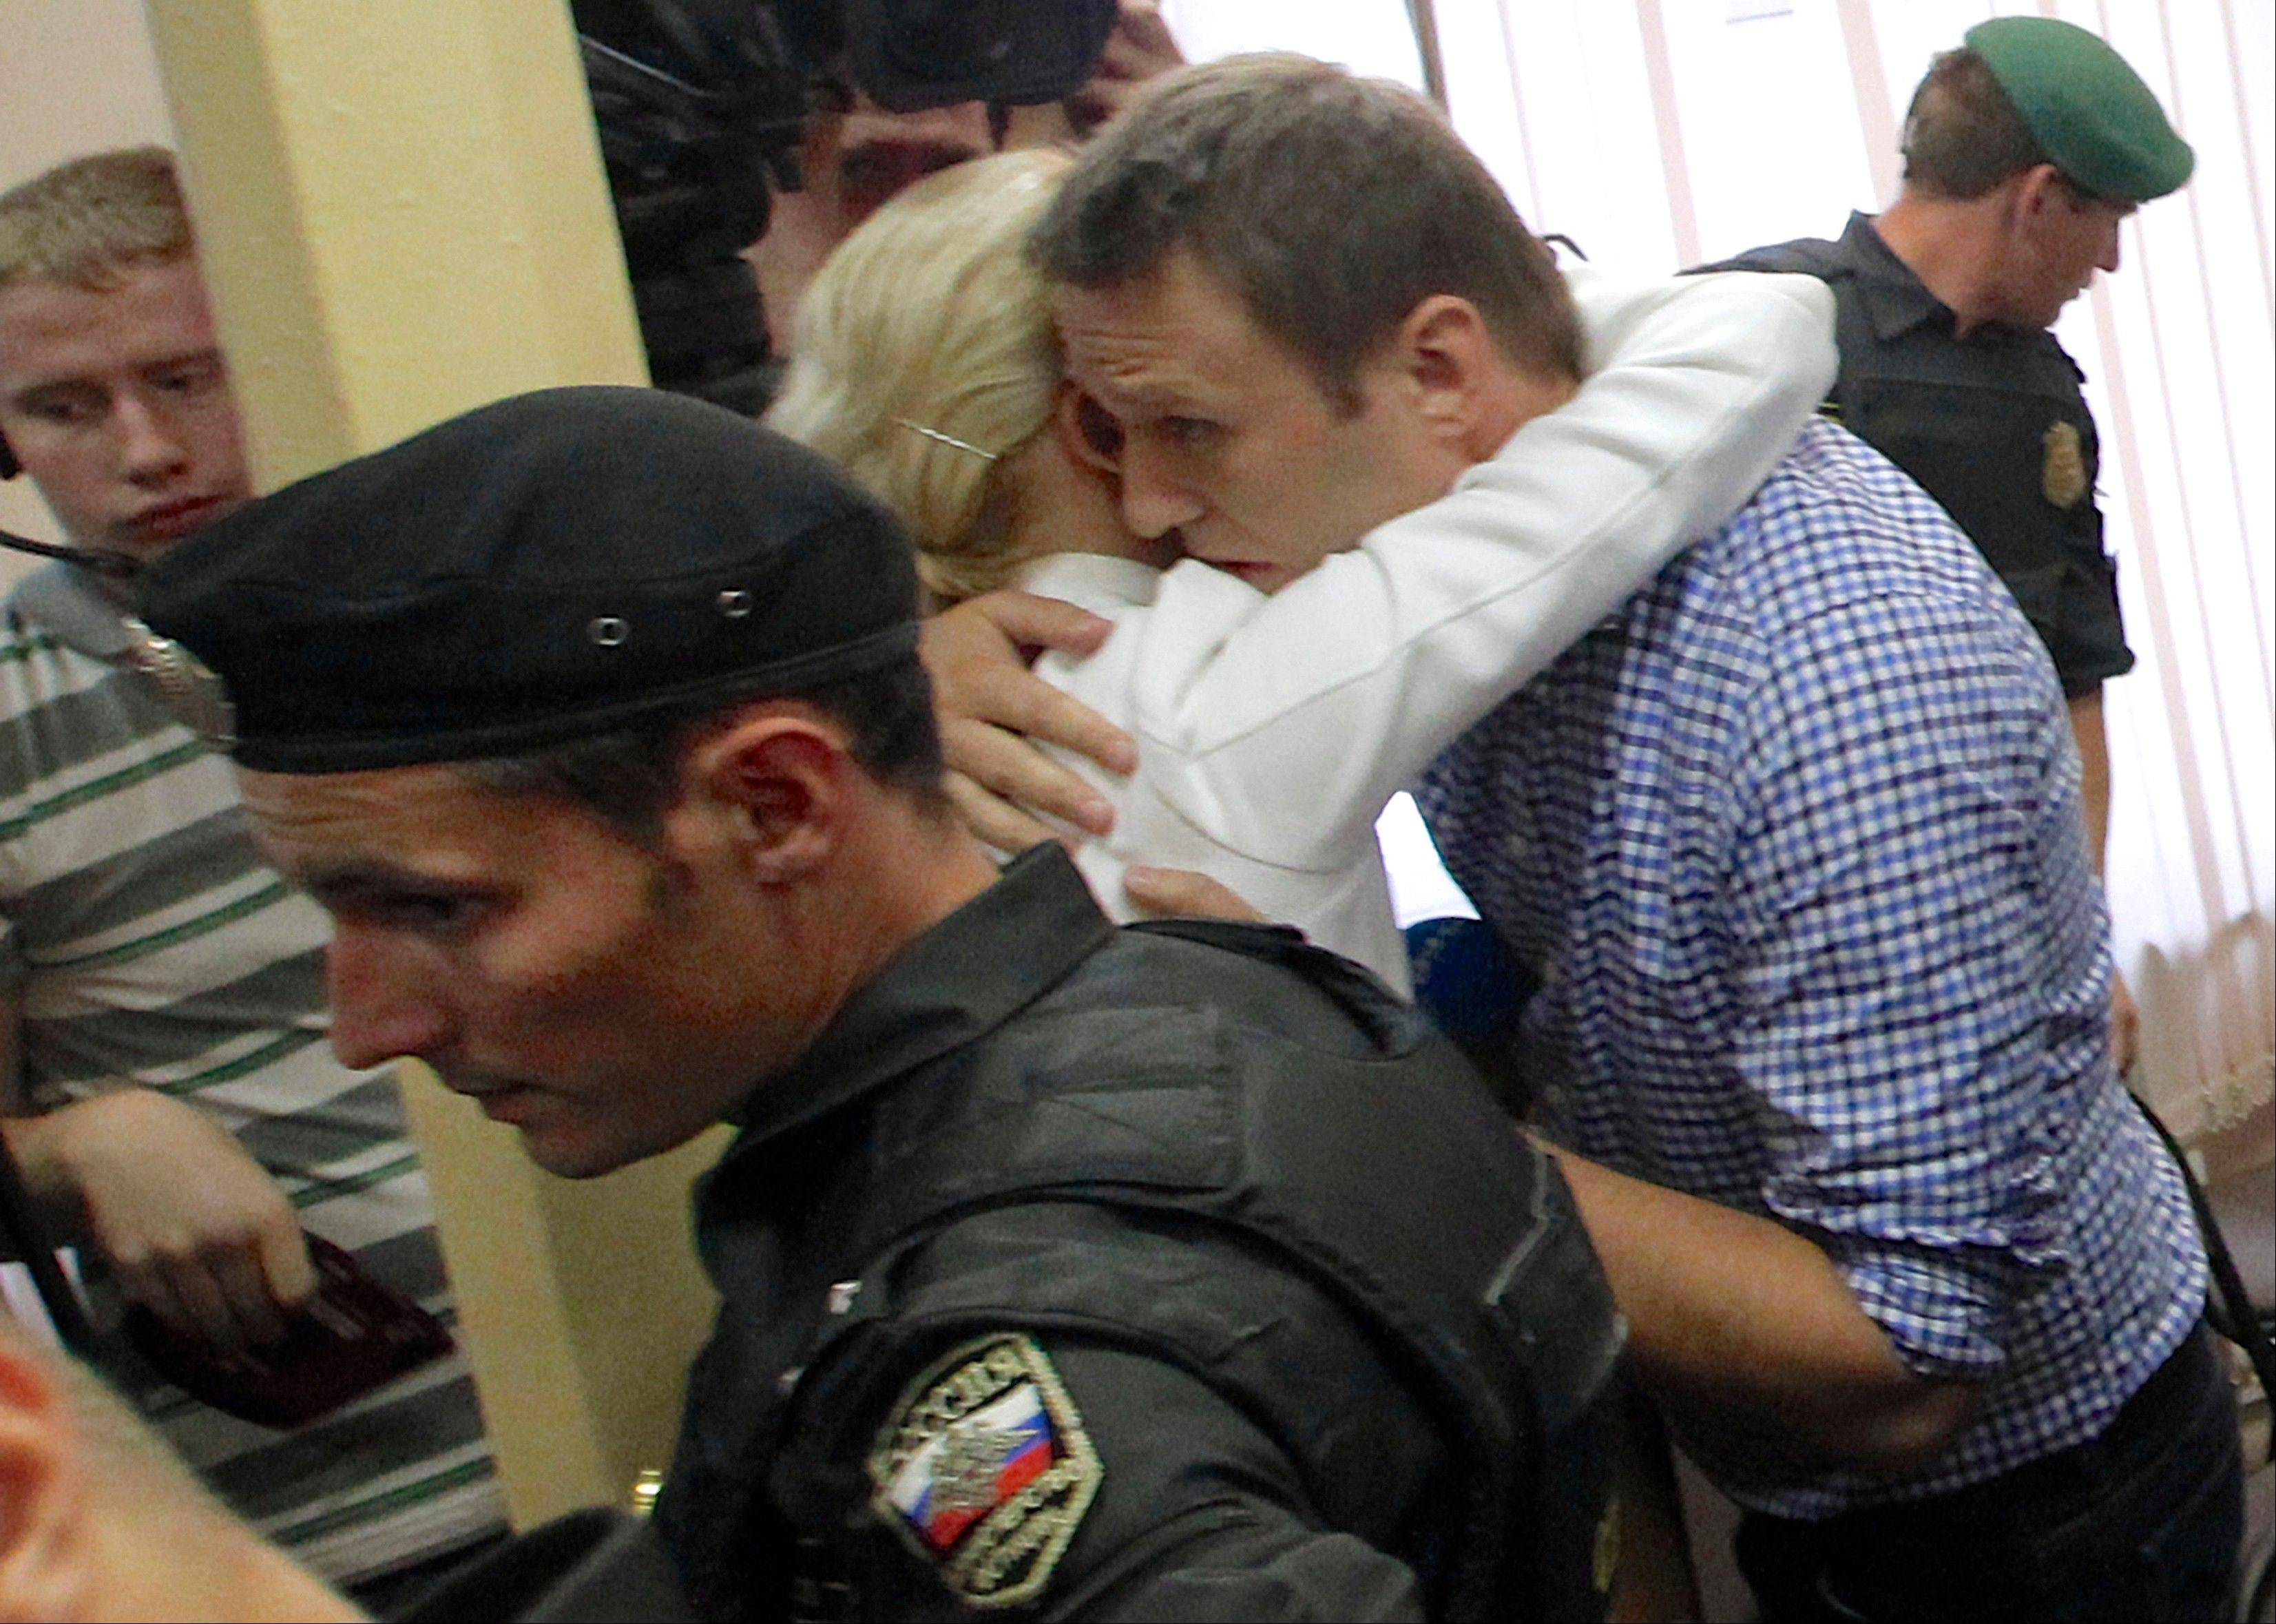 Russian opposition leader Alexei Navalny, embraces his wife Yulia at a court in Kirov, Russia Thursday, July 18, 2013. Alexei Navalny, one of the Russian opposition�s leading figures, was convicted of embezzlement Thursday and sentenced to five years in prison.